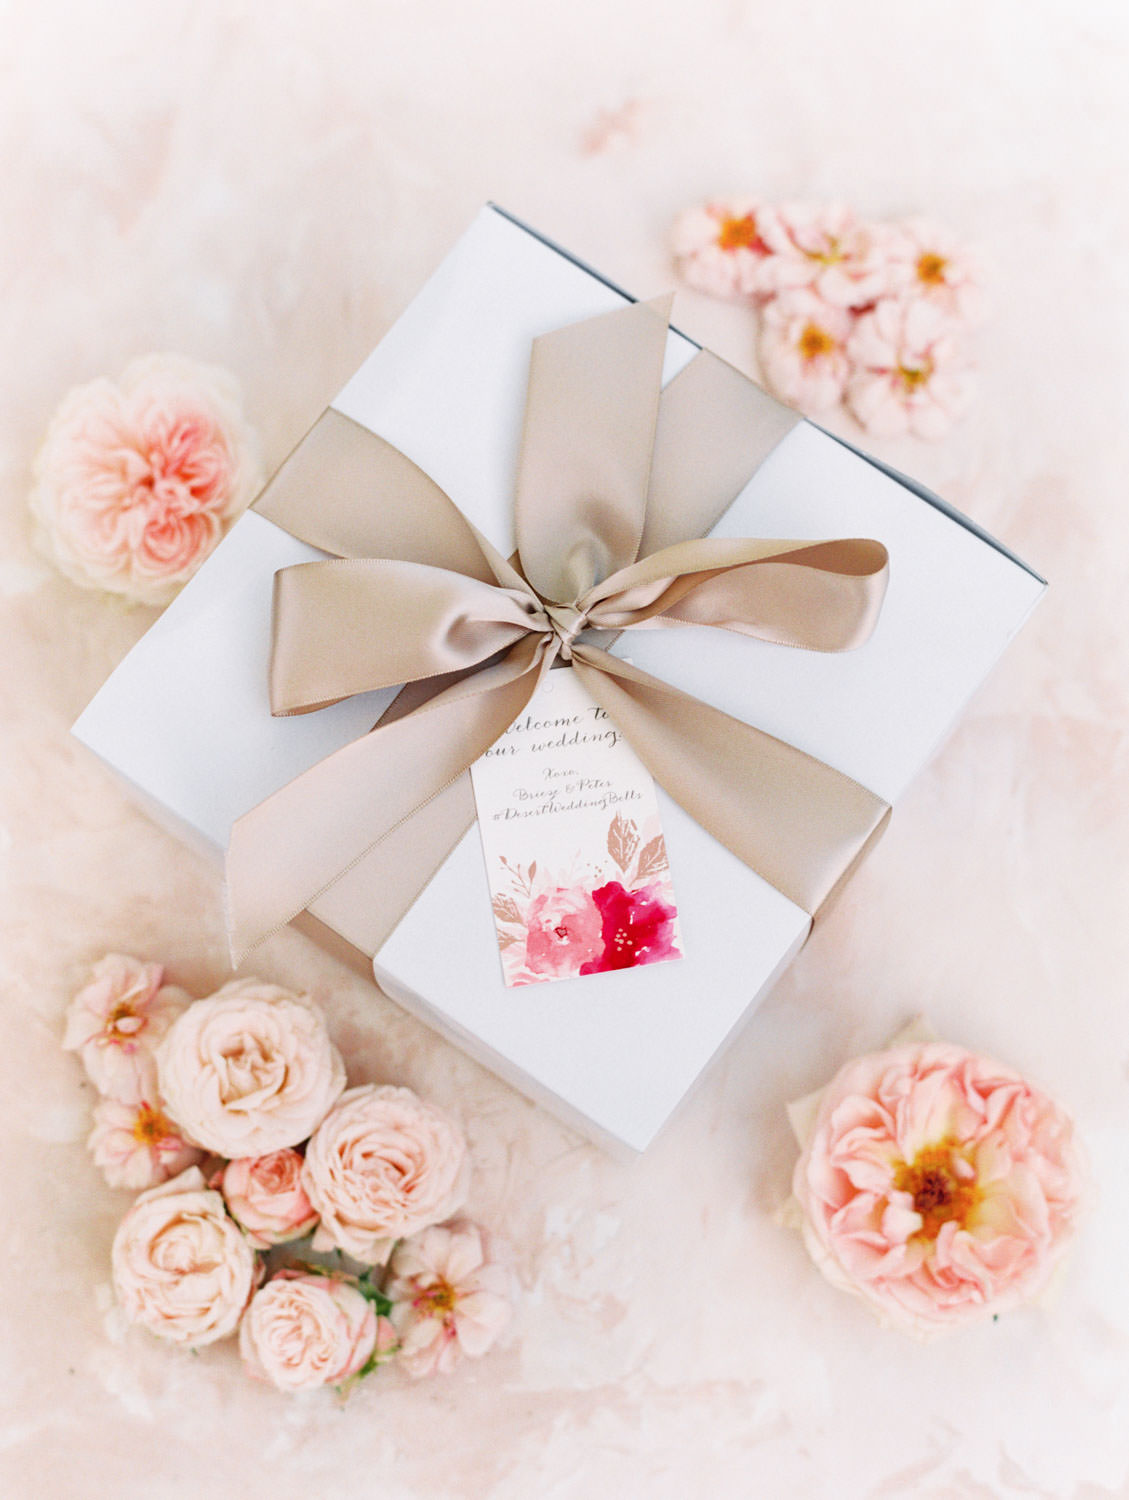 Wedding welcome box tied with a pink champagne ribbon styled with pink flowers. Film photography by Cavin Elizabeth.